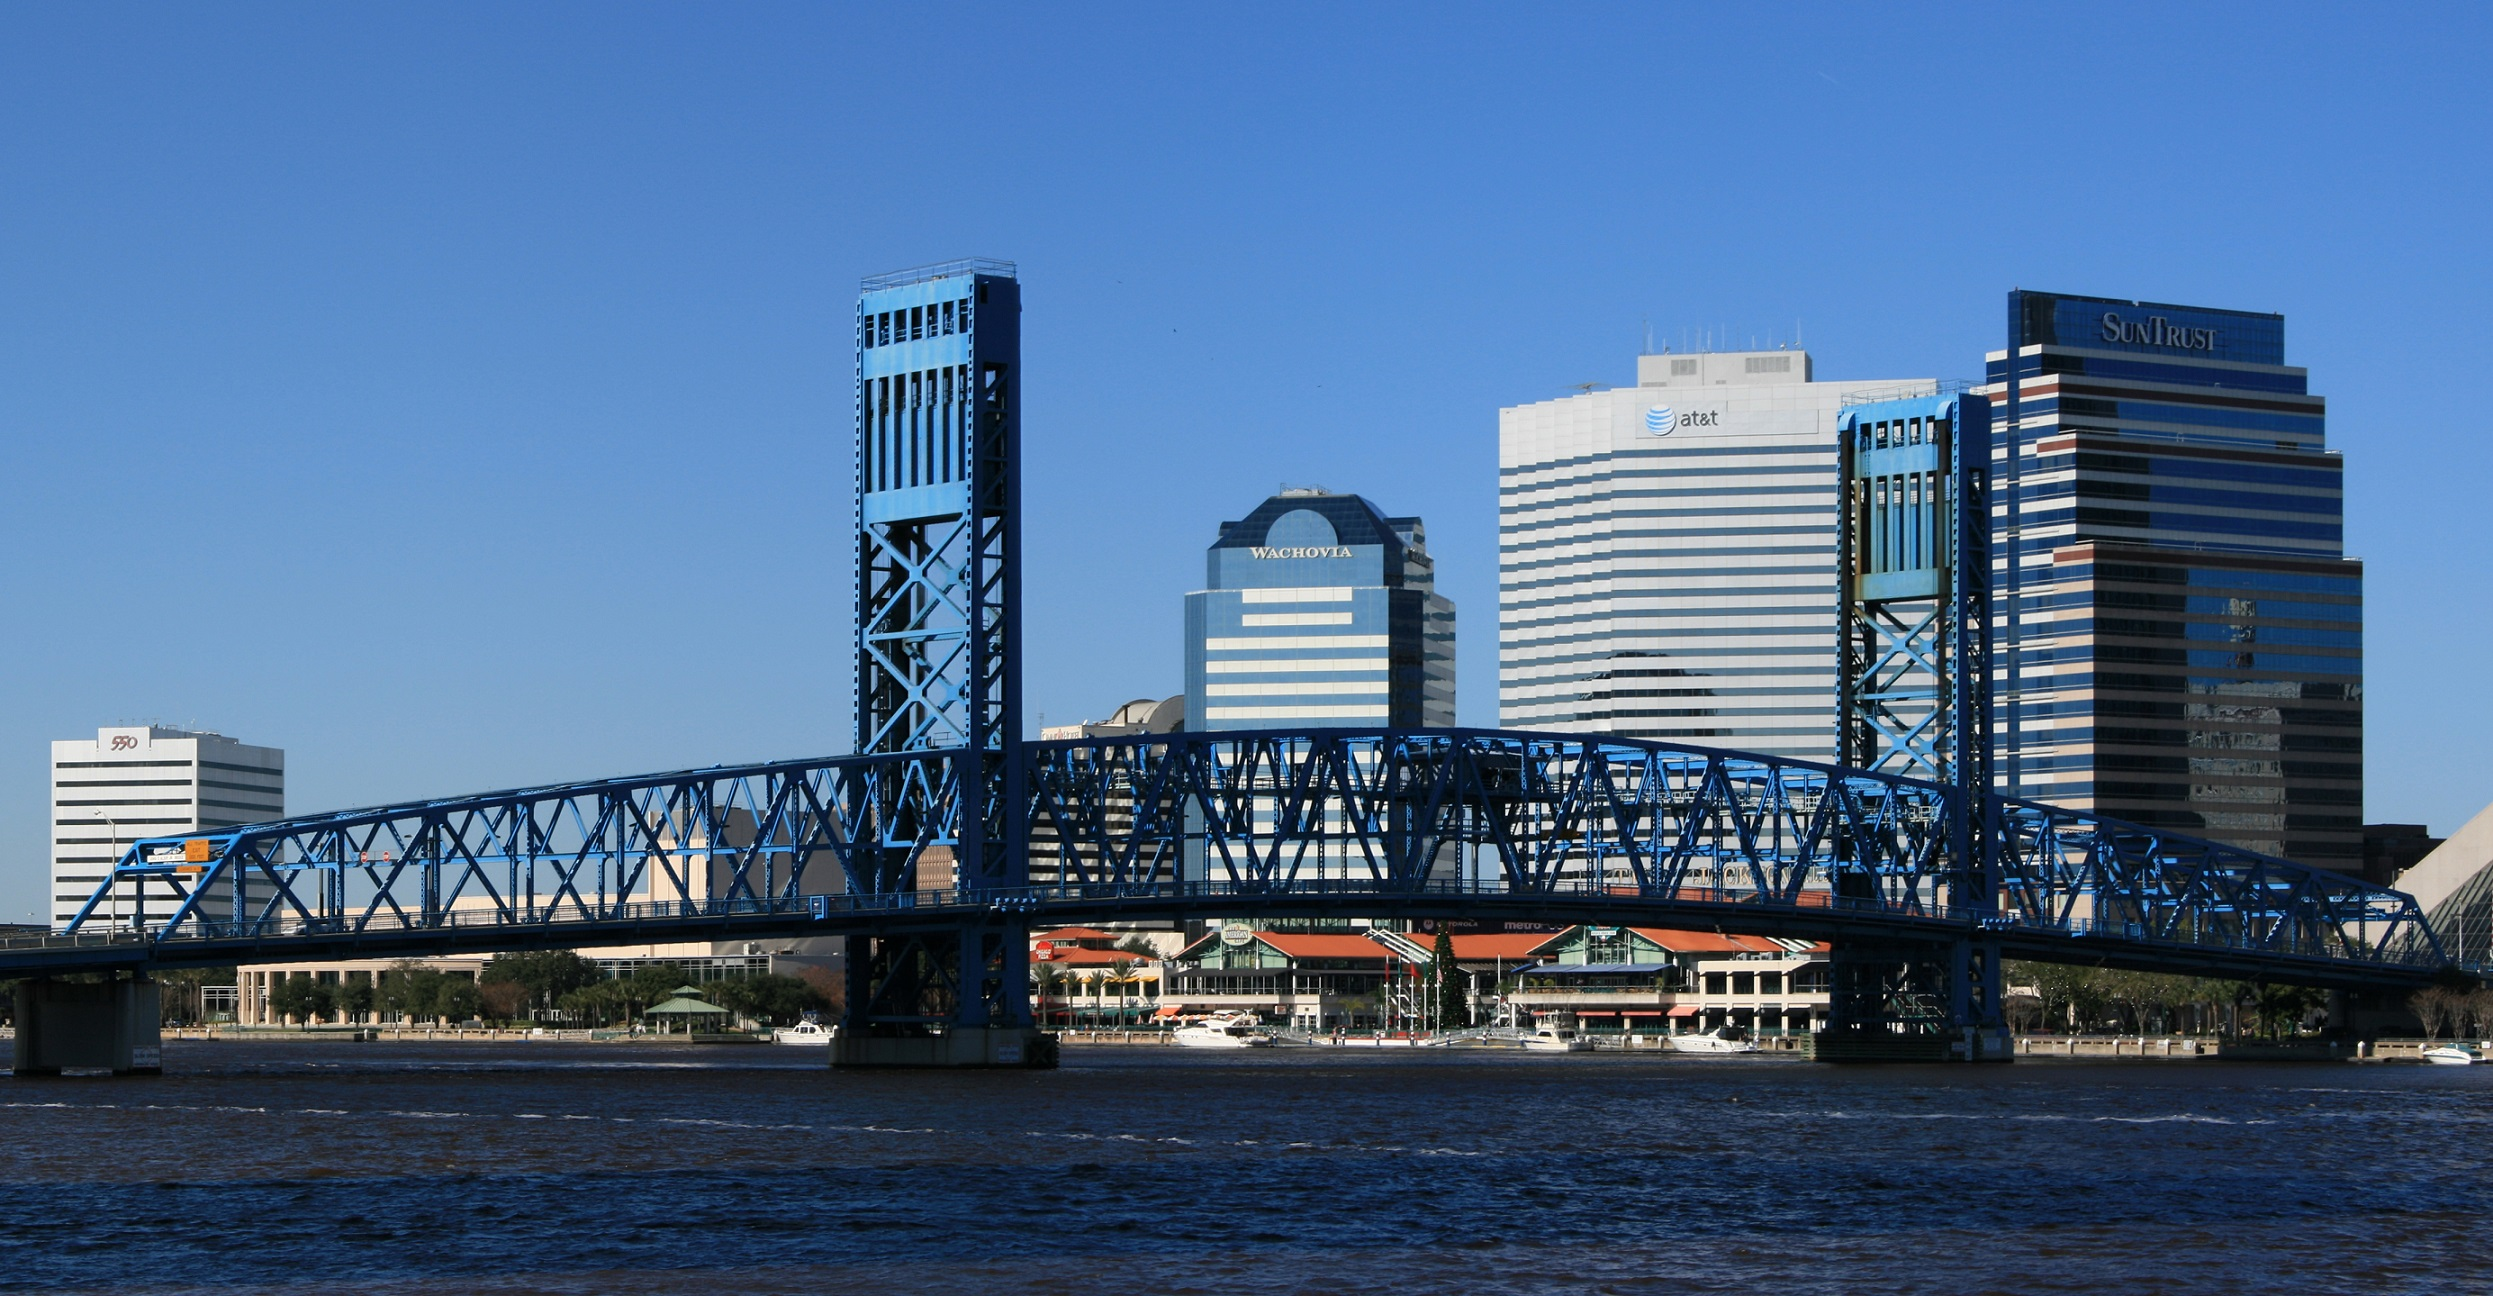 Relocating To Jacksonville Fl? 7 Ways To Fit In With Your New Neighbors